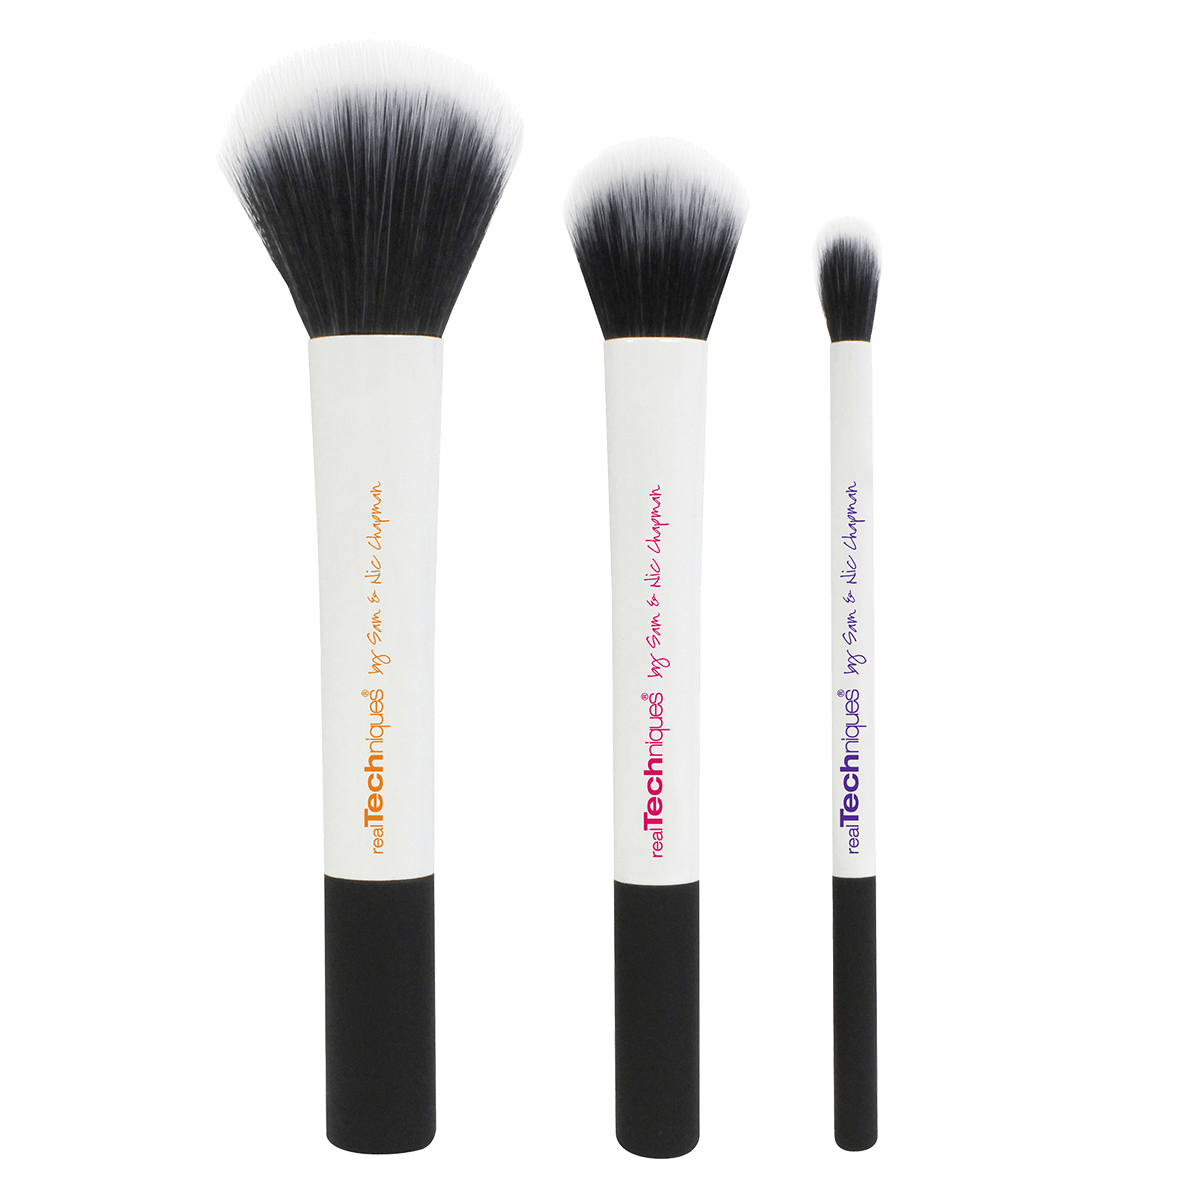 Duo fiber brushes